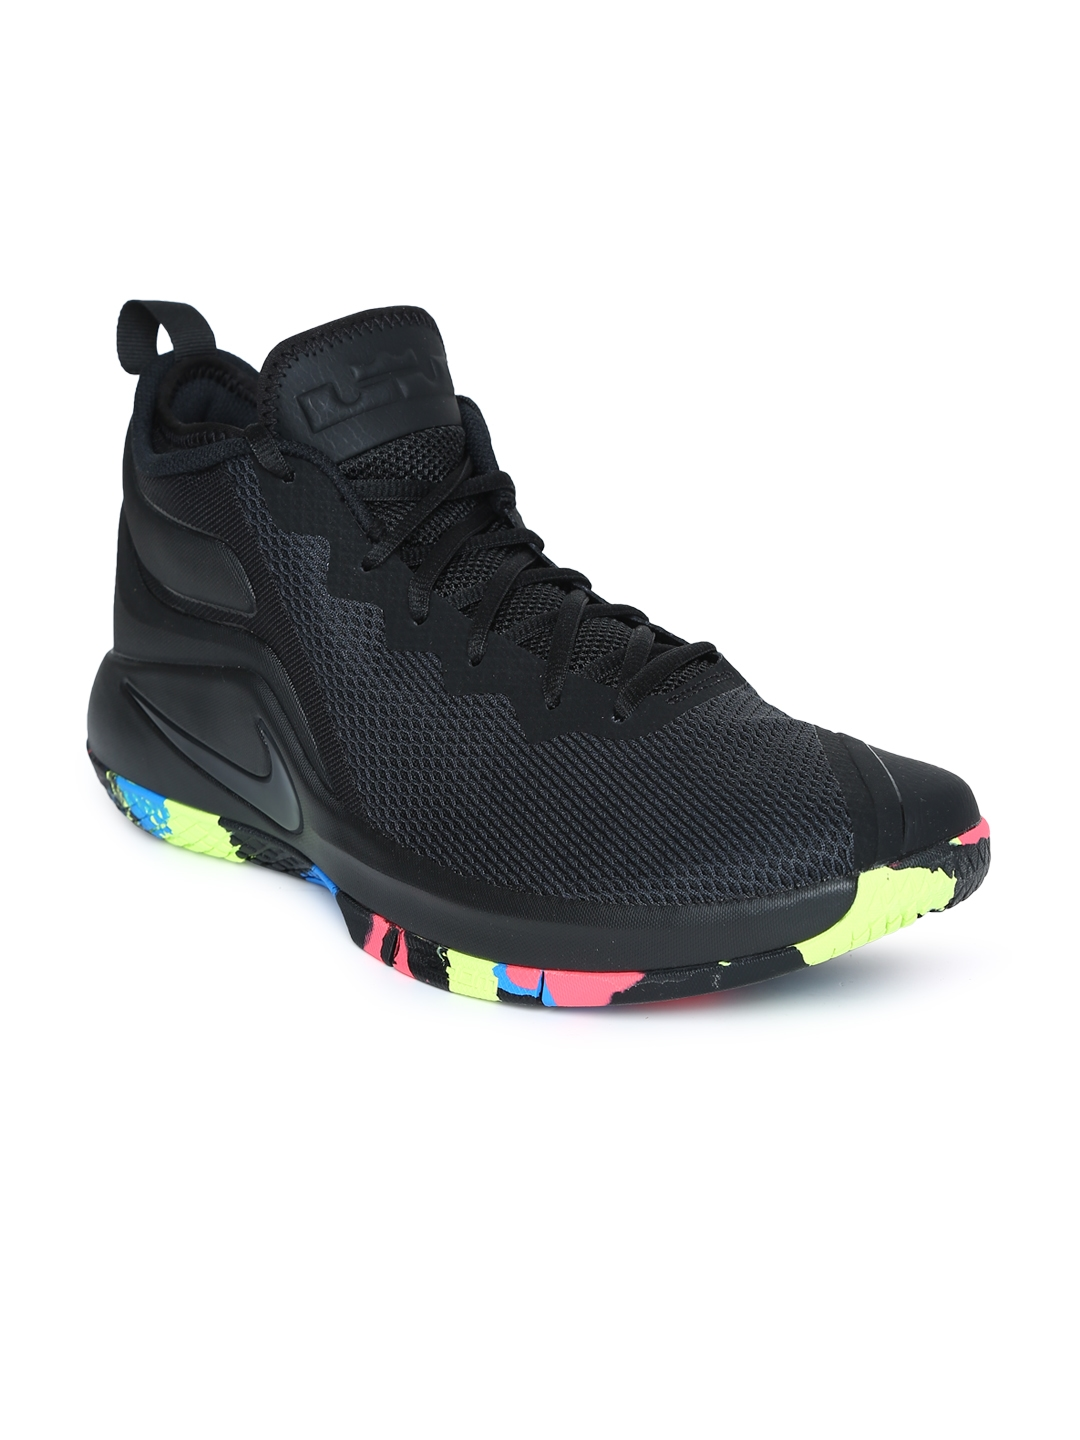 reputable site 5803c ef6ac Nike Men s Black LeBron Witness II Basketball Shoe